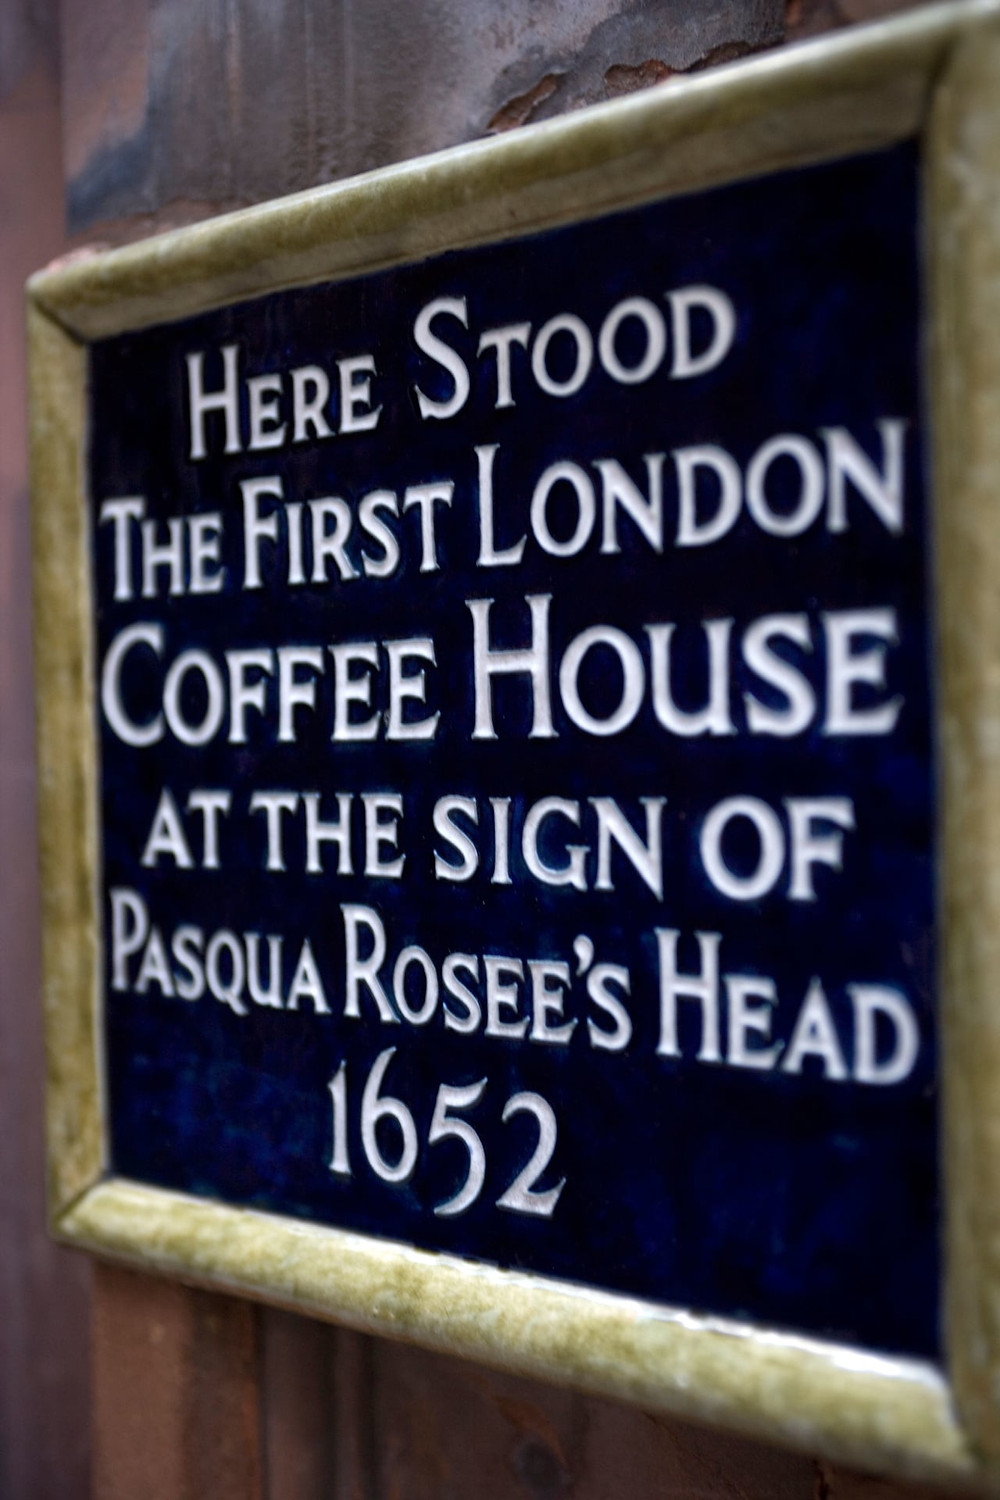 Landmark sign of the first London coffeehouse